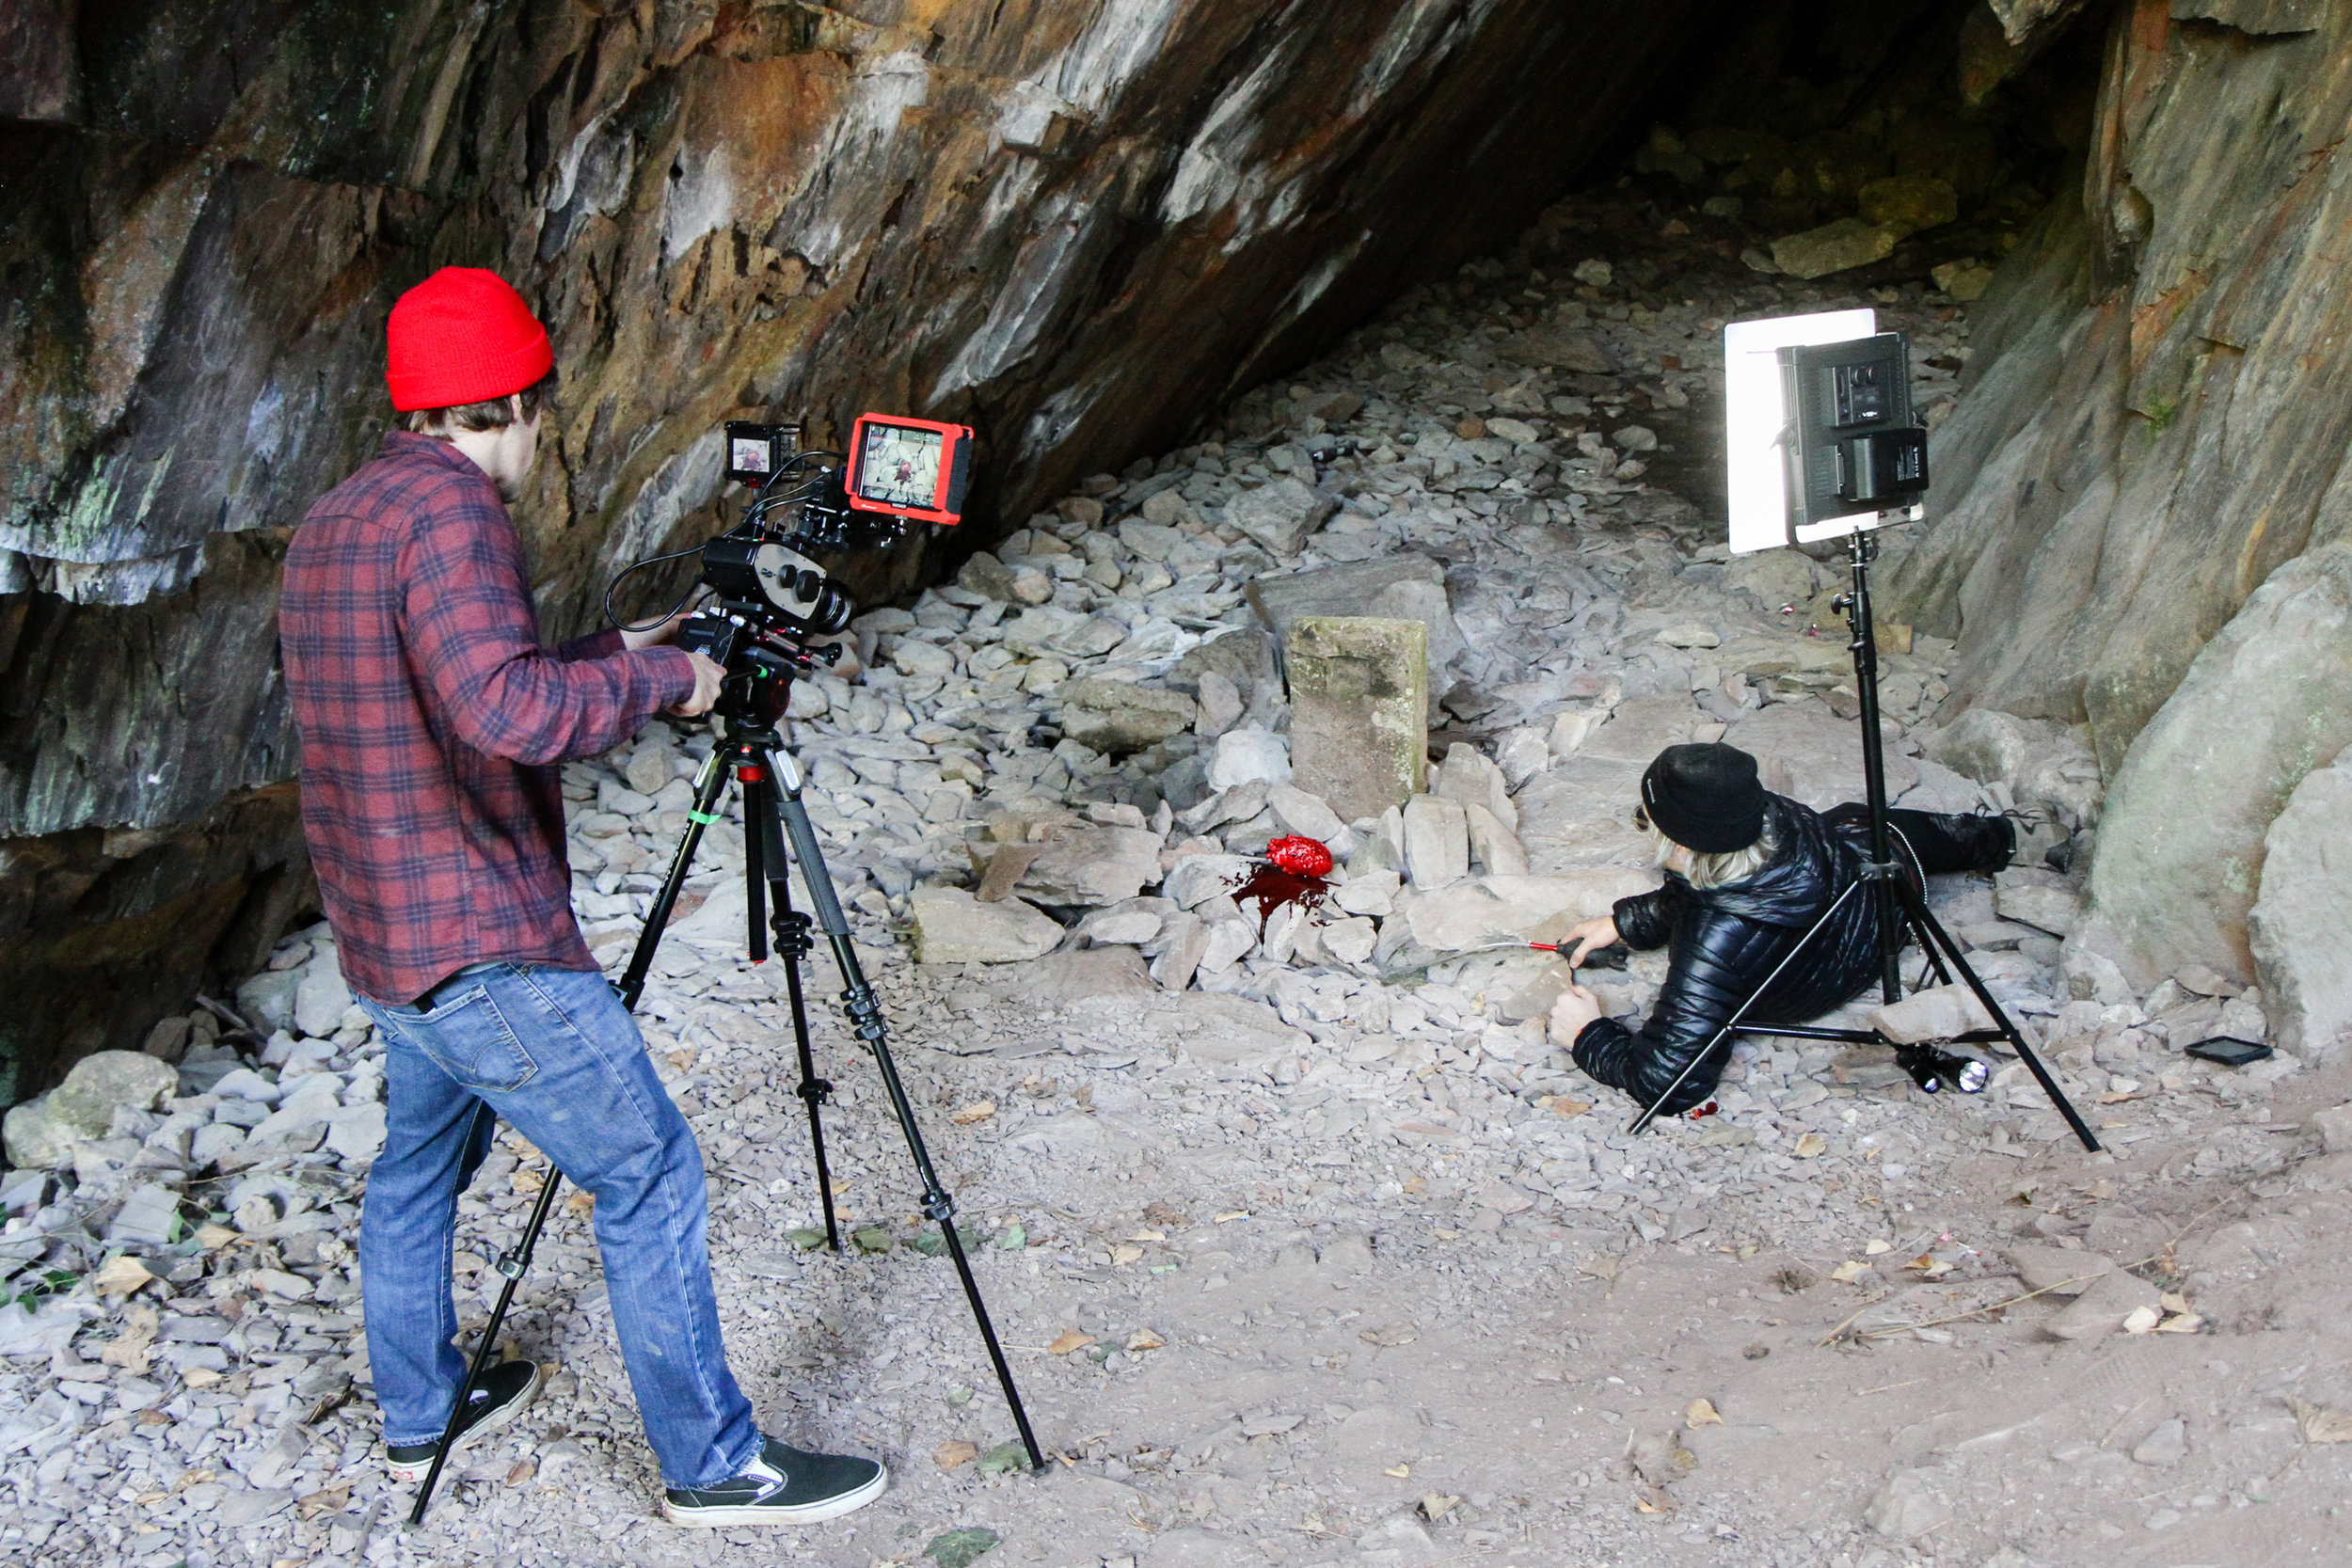 This cave was about 45 minutes drive from our home. I think it's the only one near us. It's not a very good cave but we managed to get the local council to let us use it for free. We had to shoot it from various angles that don't make sense geographically because it was so small.